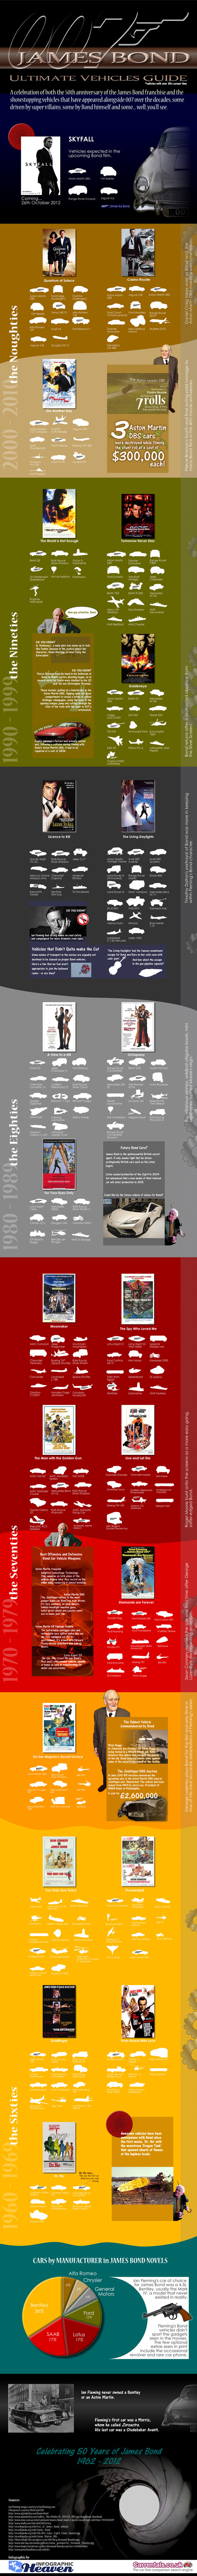 The_james_bond_ultimate_vehicle_guide_infographic